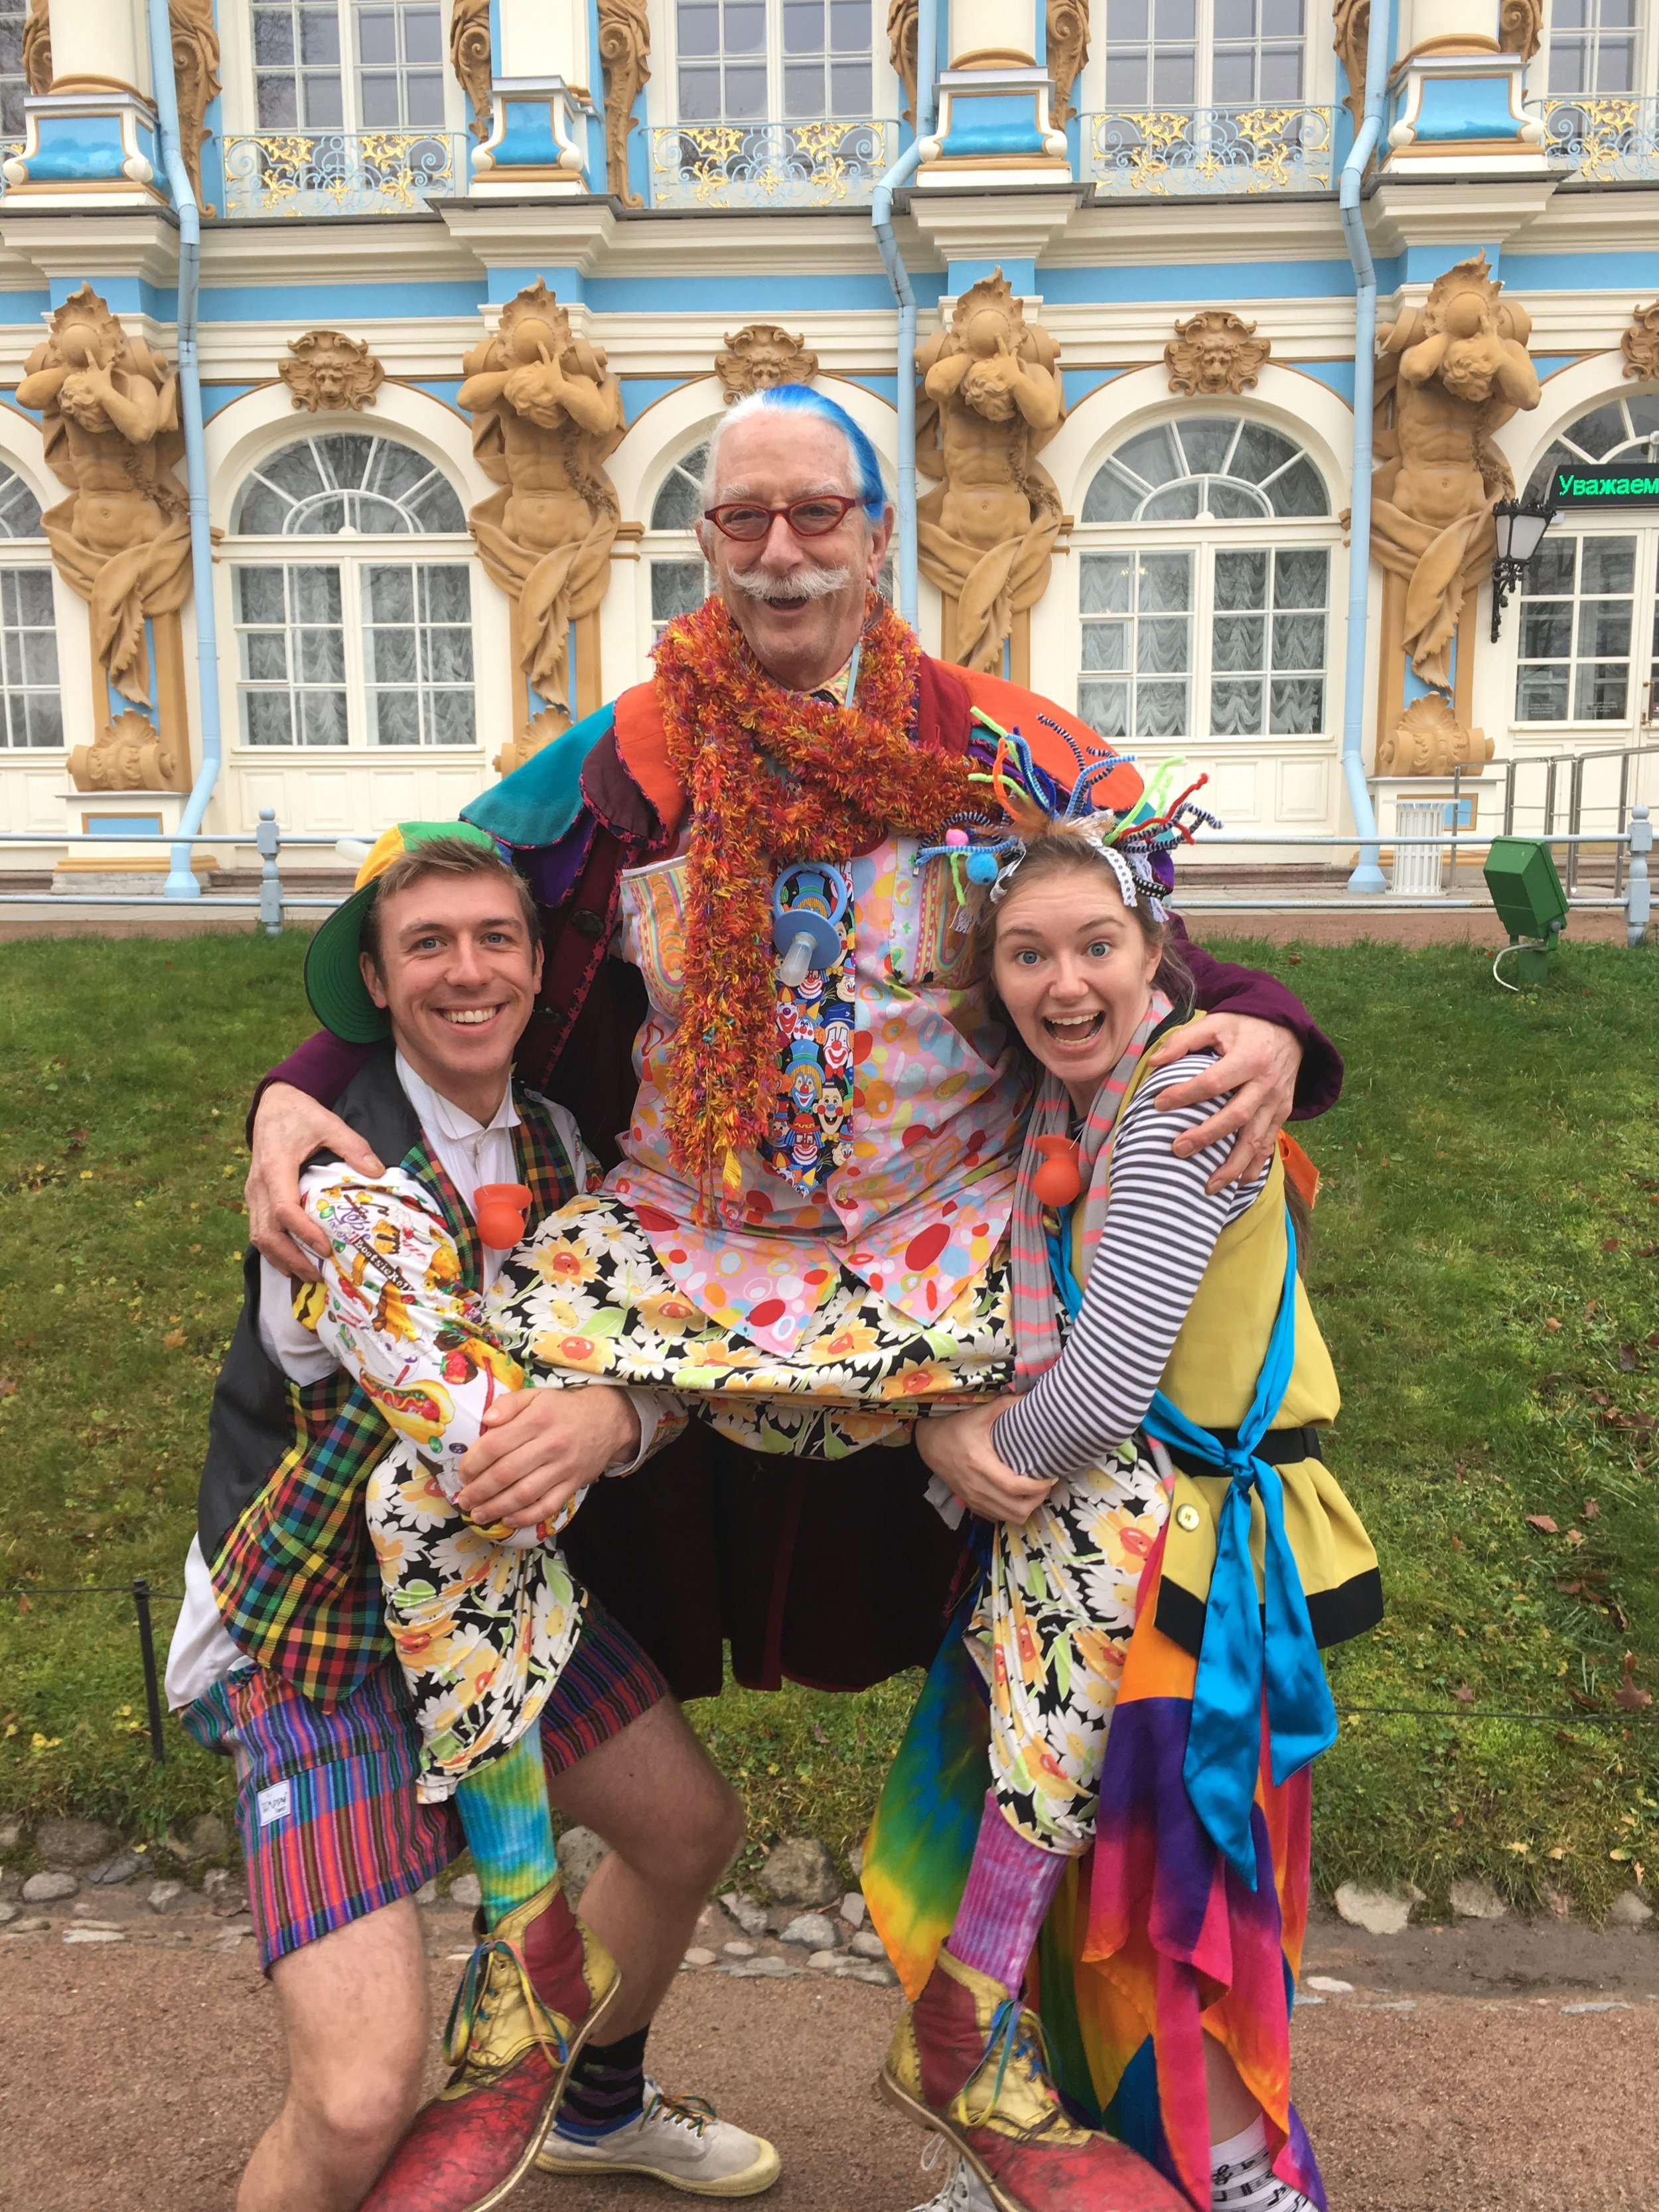 Clowning around with Patch and Sophie in St. Petersburg